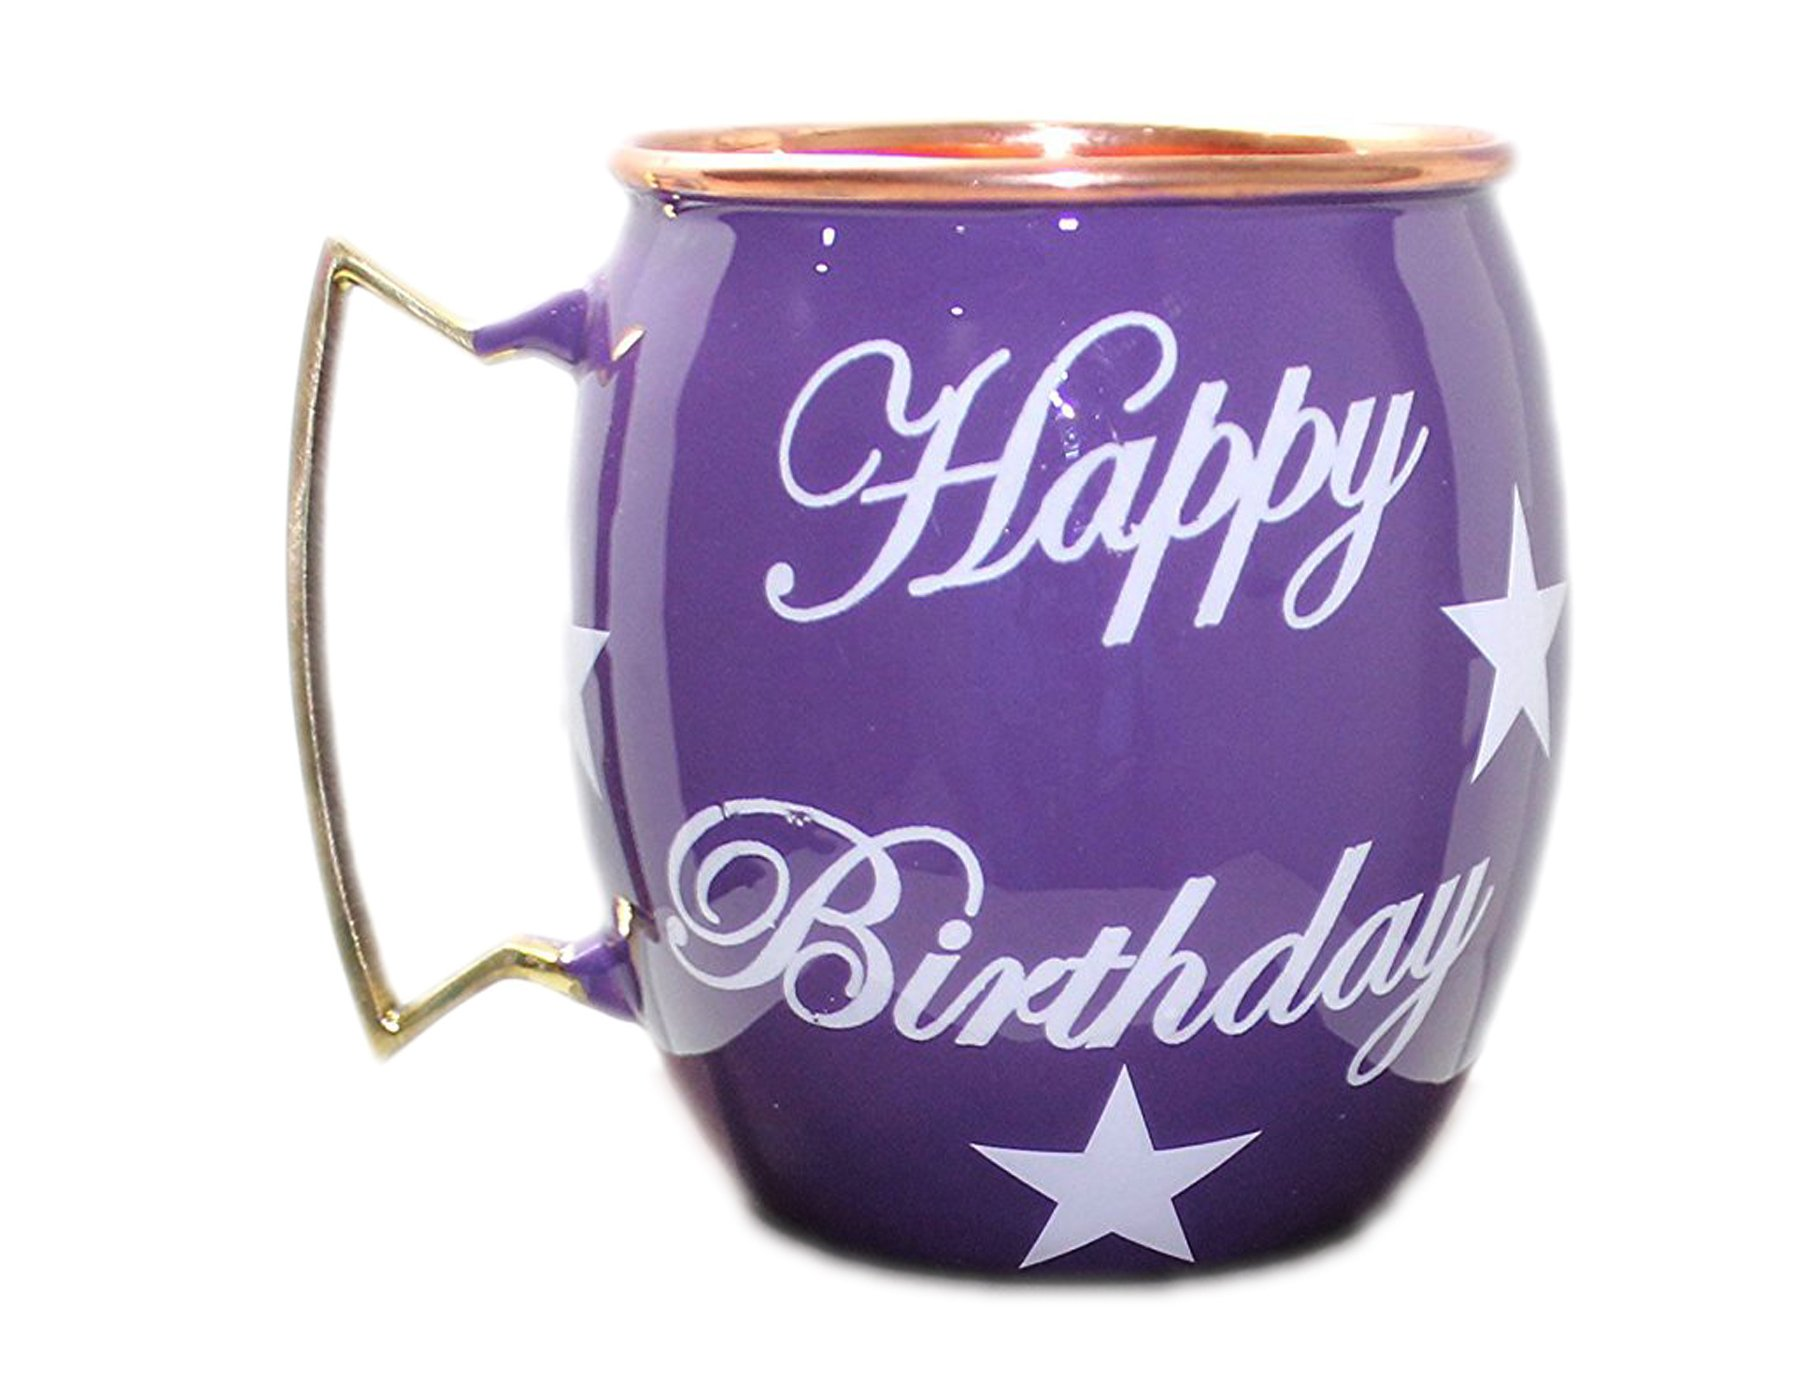 PARIJAT HANDICRAFT Happy Birthday Hand Painted Copper Mugs Special Deign For Gift On Birthday Moscow Mule Mugs Cups Mugs Smooth Finish.